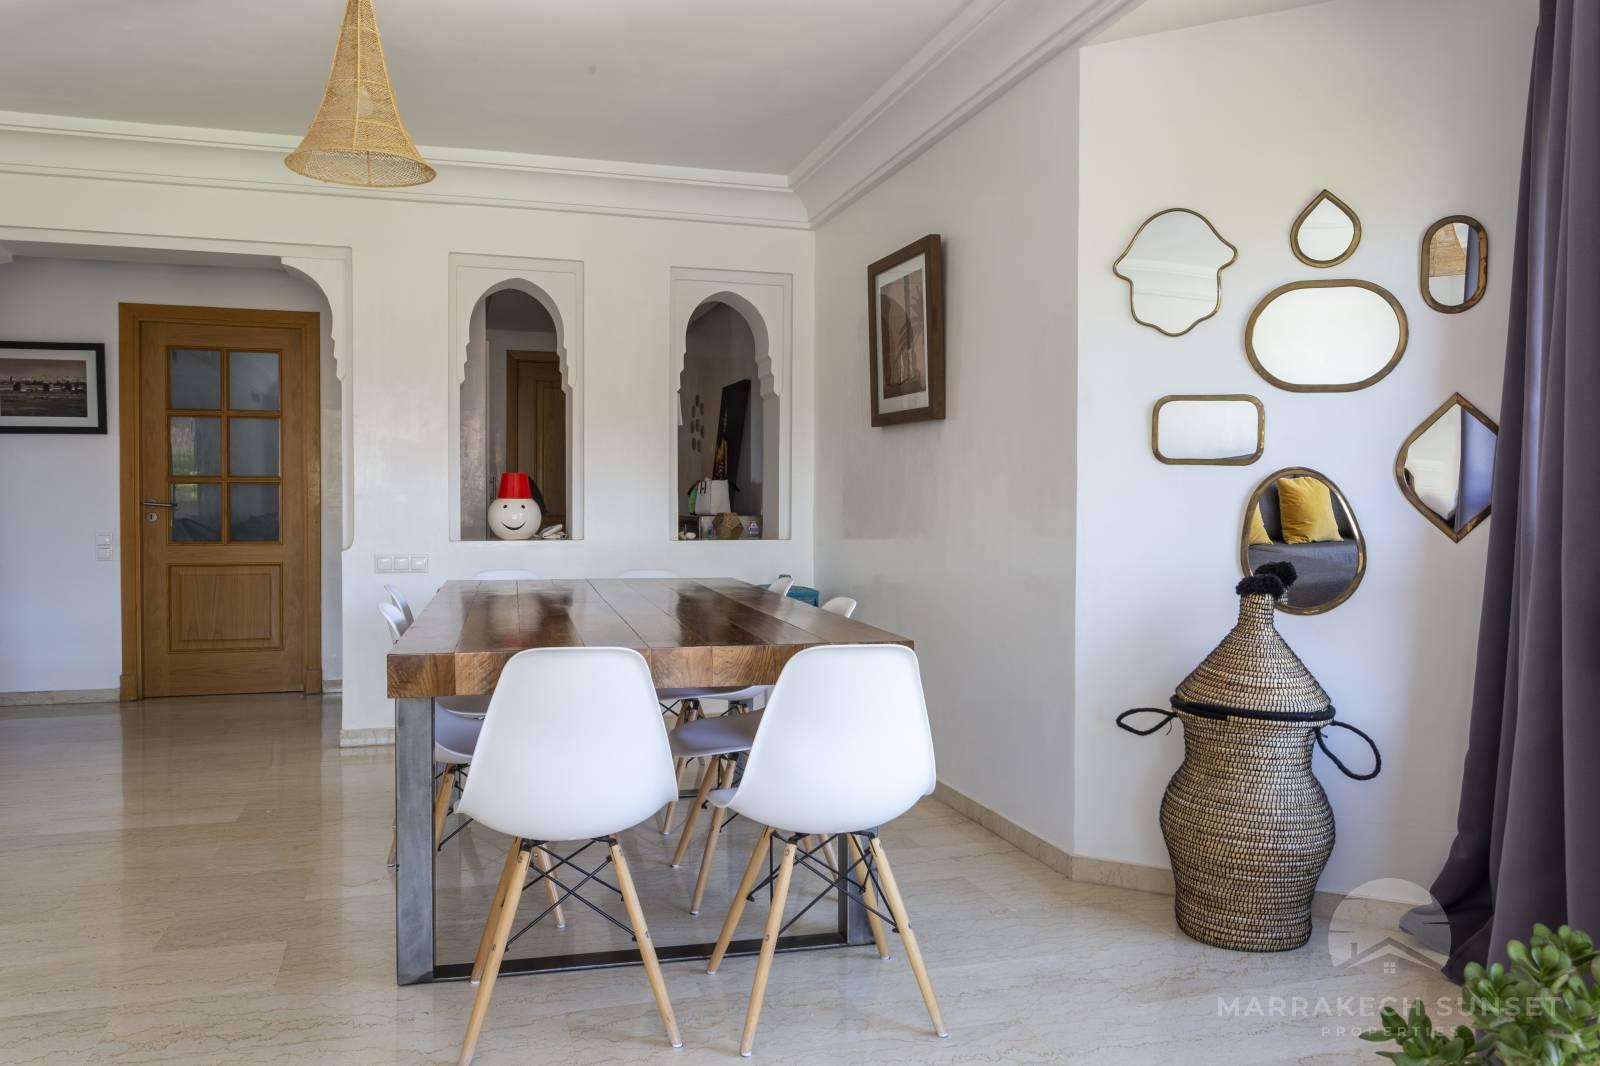 Duplex apartment for sale in Marrakech in a residential complex